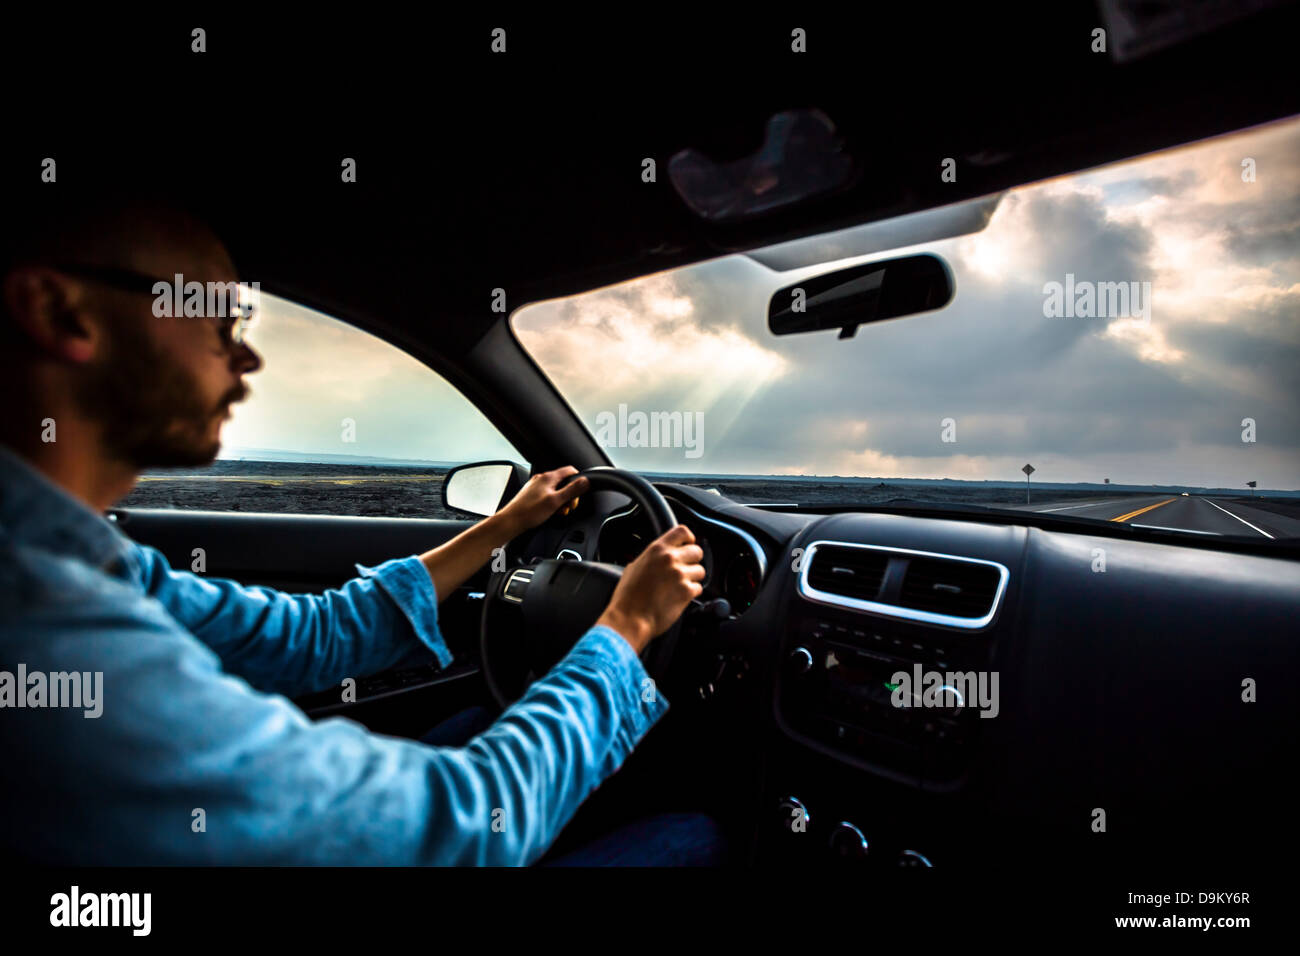 Mid adult man driving car - Stock Image